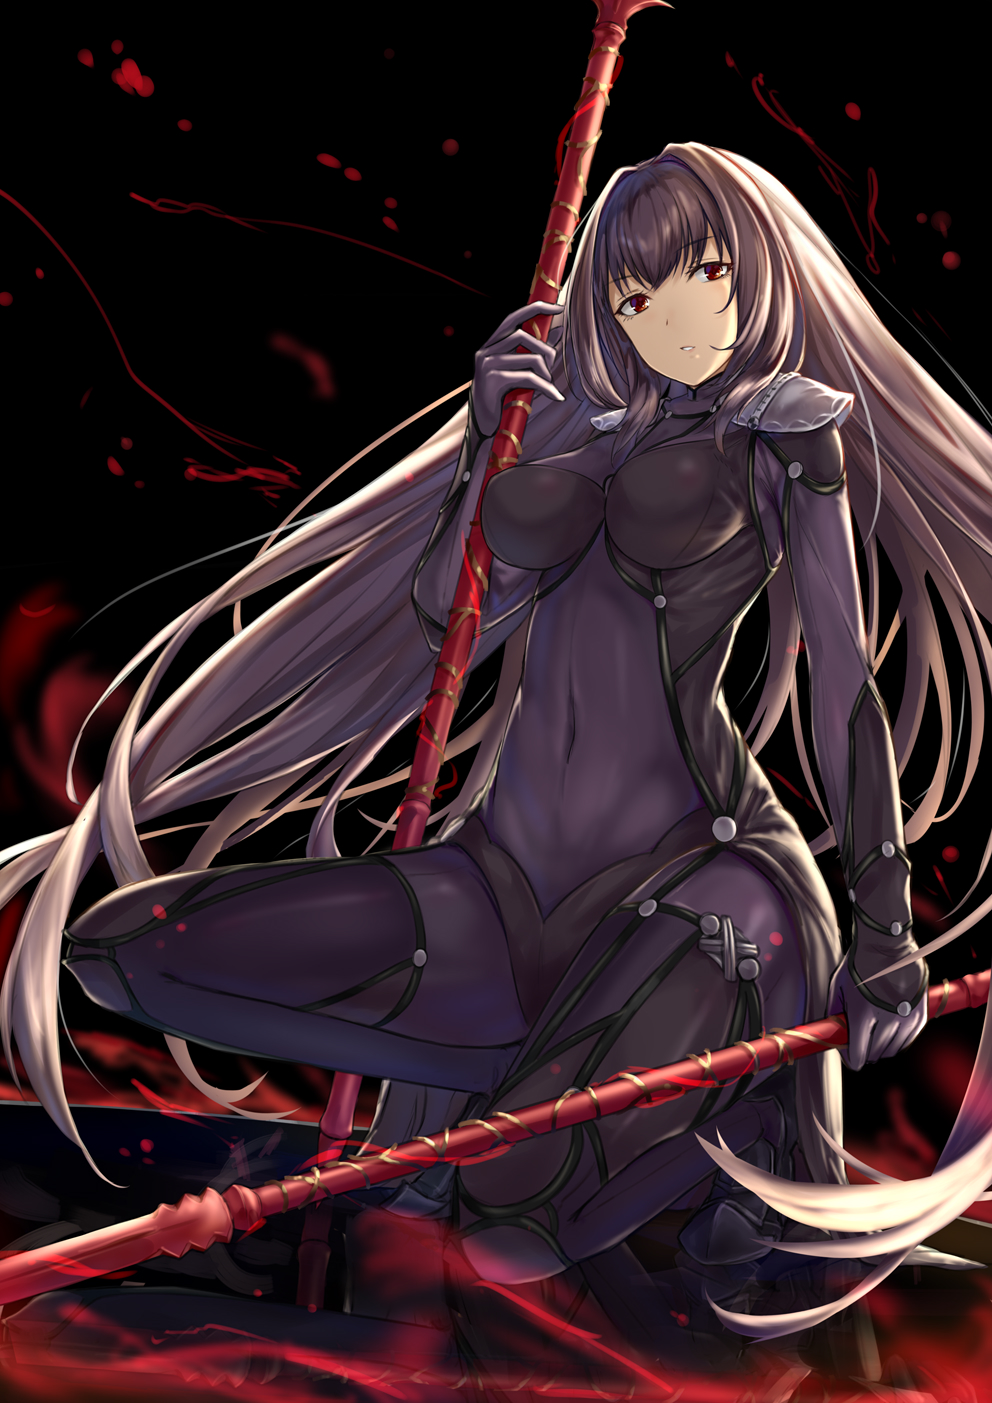 1girl armor bangs black_background black_hair blood blood_splatter bodysuit breasts covered_navel dual_persona eyebrows_visible_through_hair fate/grand_order fate_(series) gae_bolg gohei_(aoi_yuugure) highres holding holding_weapon impossible_bodysuit impossible_clothes large_breasts light long_hair looking_at_viewer one_knee pauldrons purple_bodysuit red_eyes reflection reflective_floor scathach_(fate/grand_order) shoulder_armor simple_background skin_tight solo very_long_hair weapon